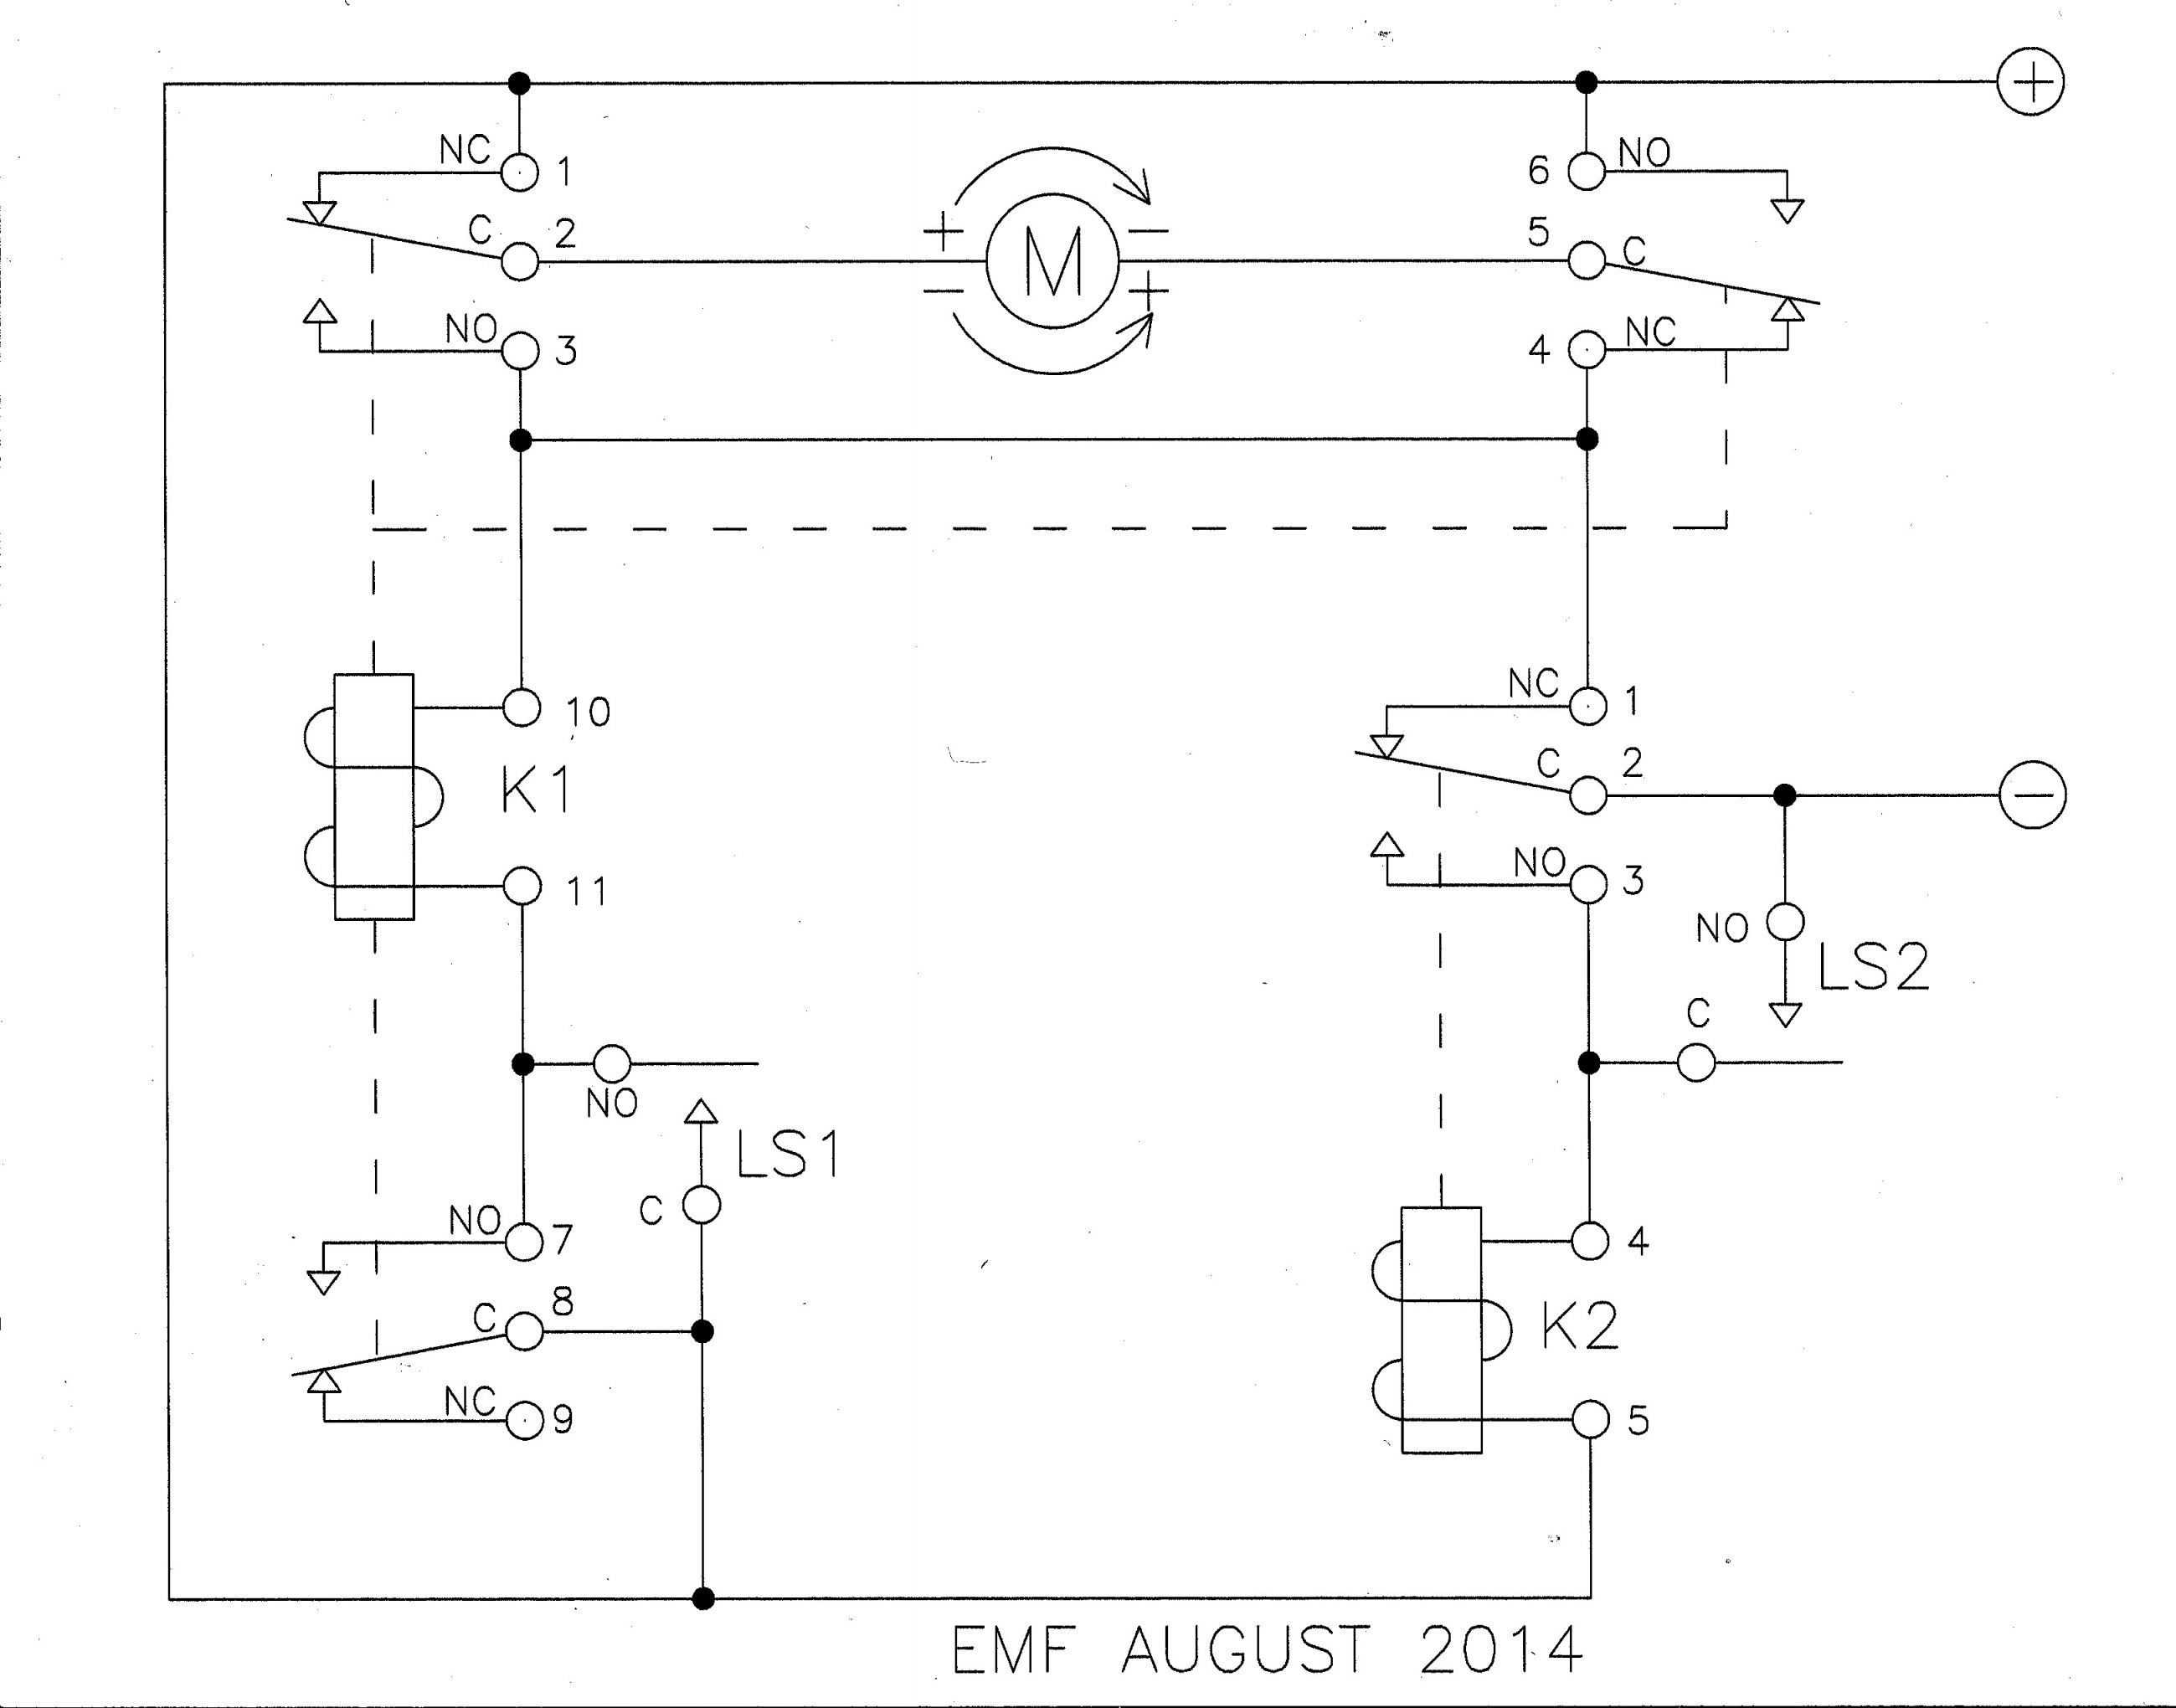 Idec Relay Wiring Diagram   Diagram Of Electrical Wiring In Home ...